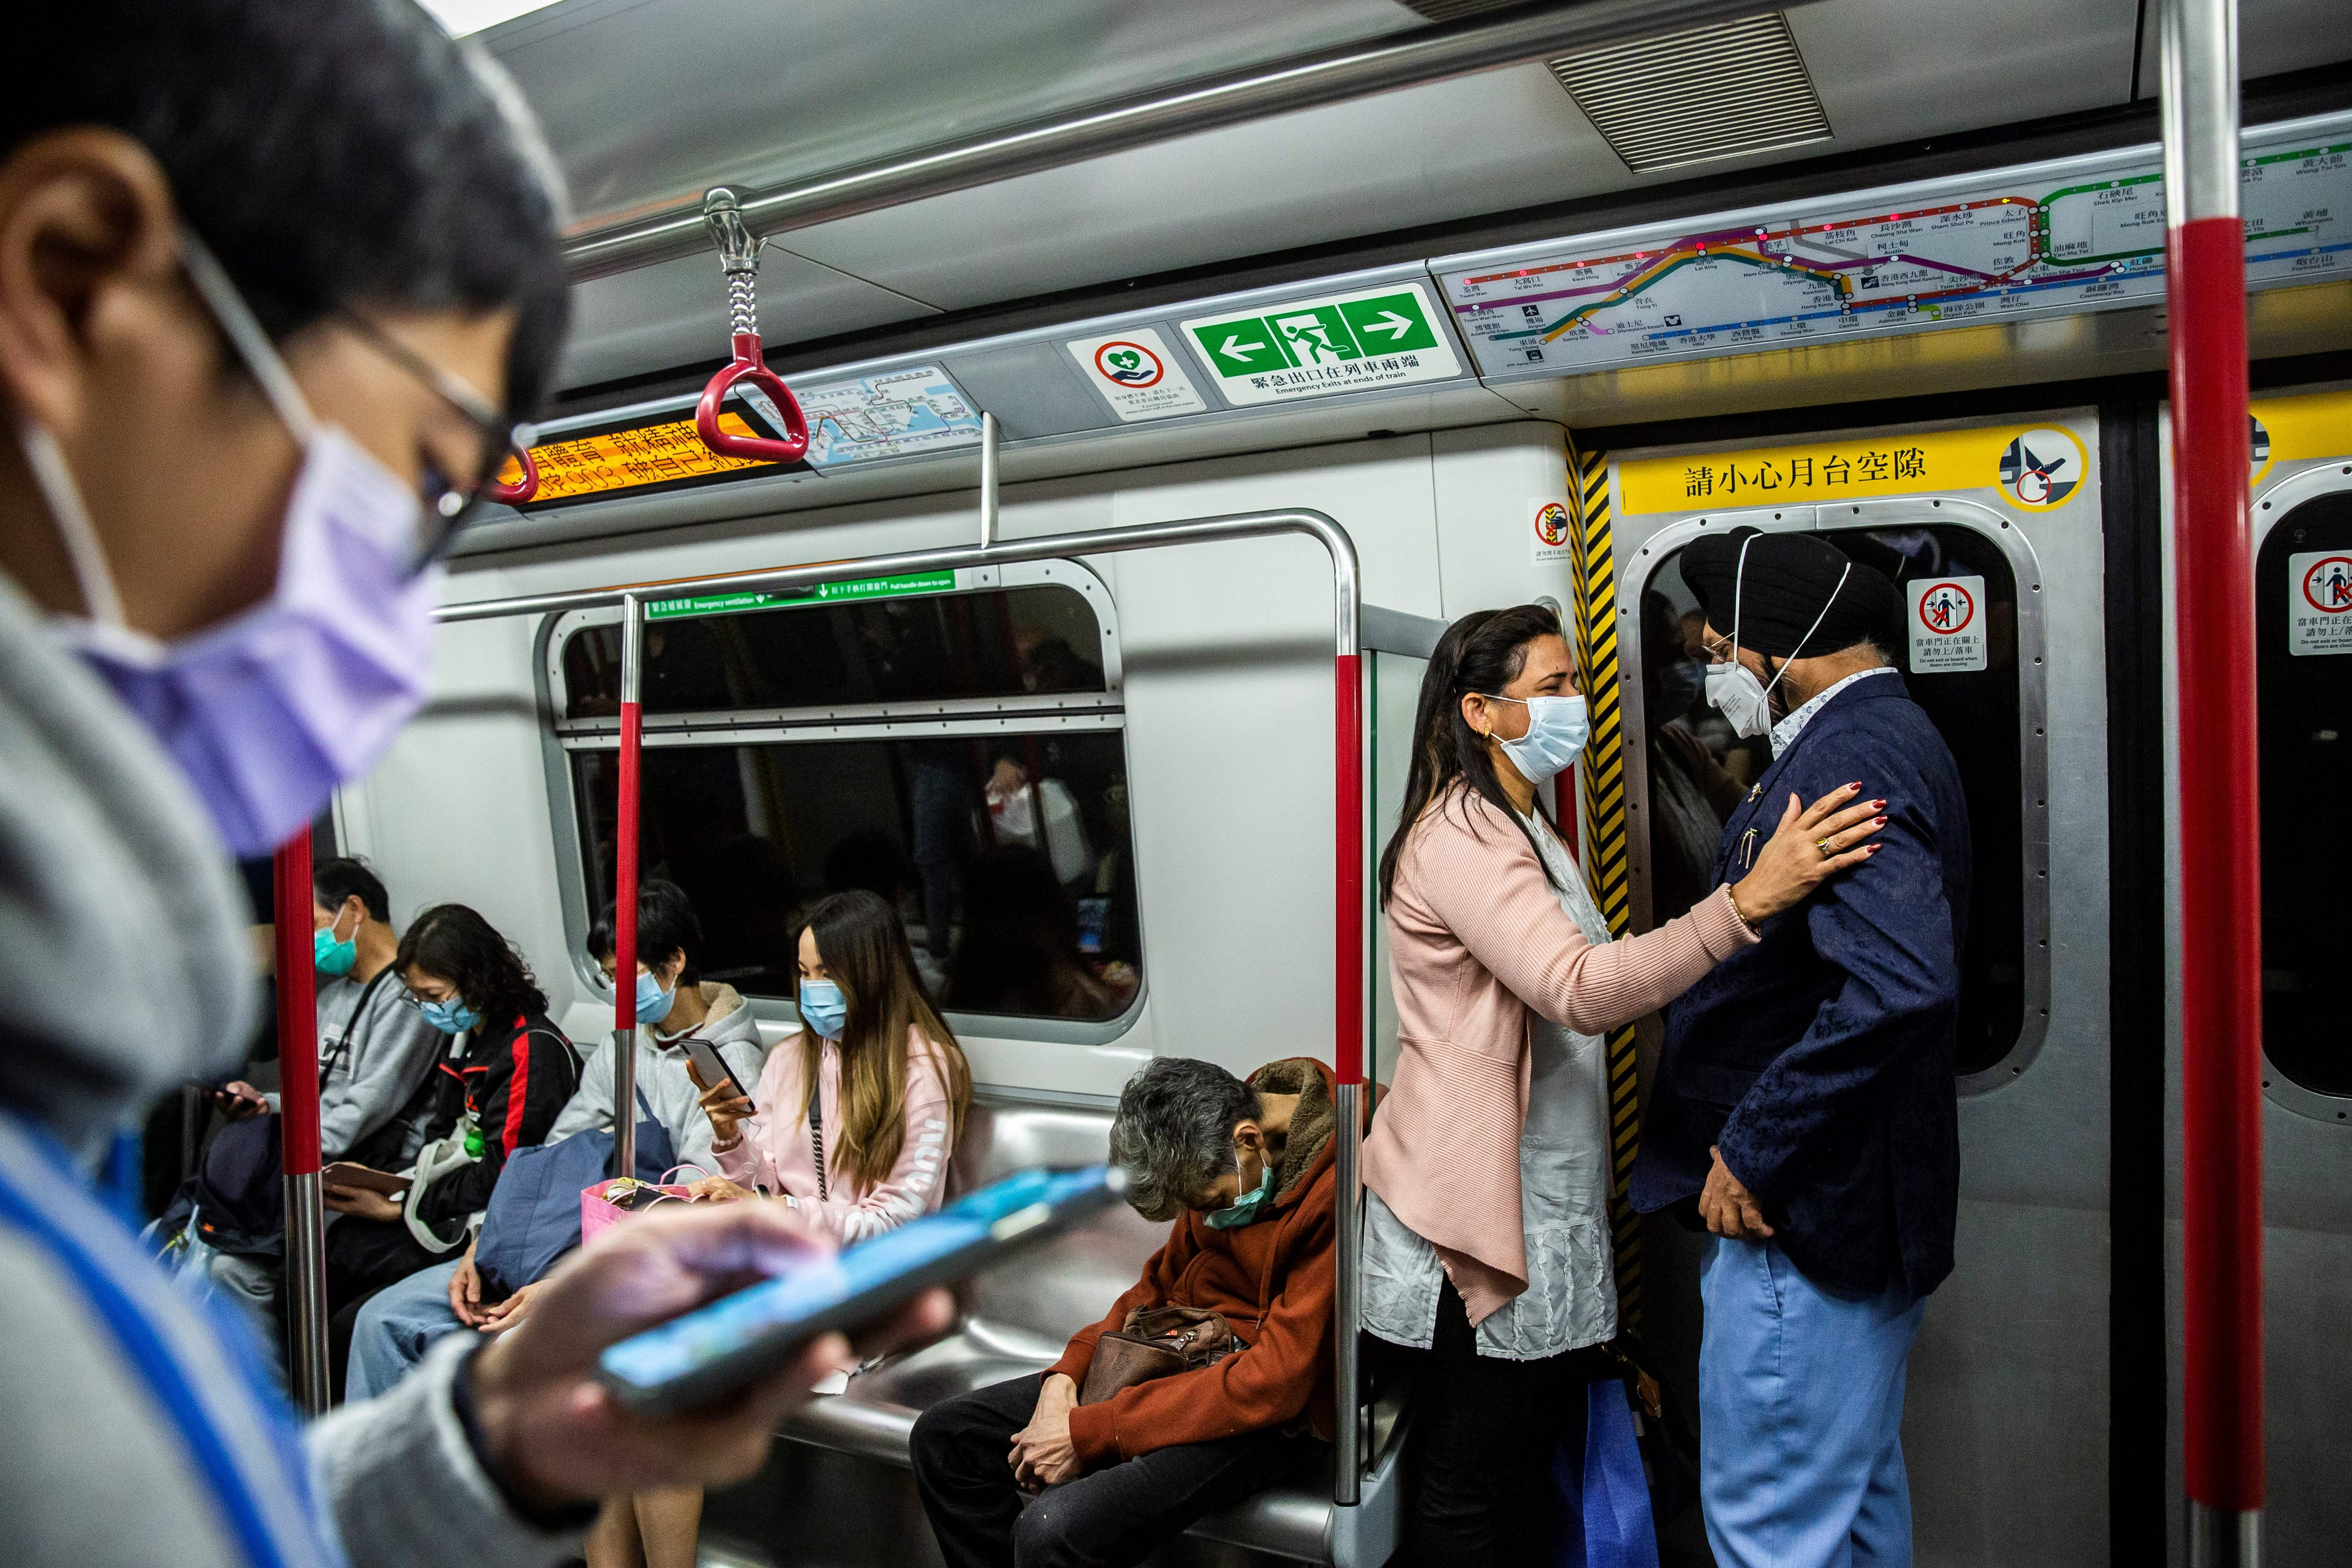 Passengers wearing protective face masks travel on the subway in Hong Kong on February 25, 2020. (ISAAC LAWRENCE/AFP via Getty Images)